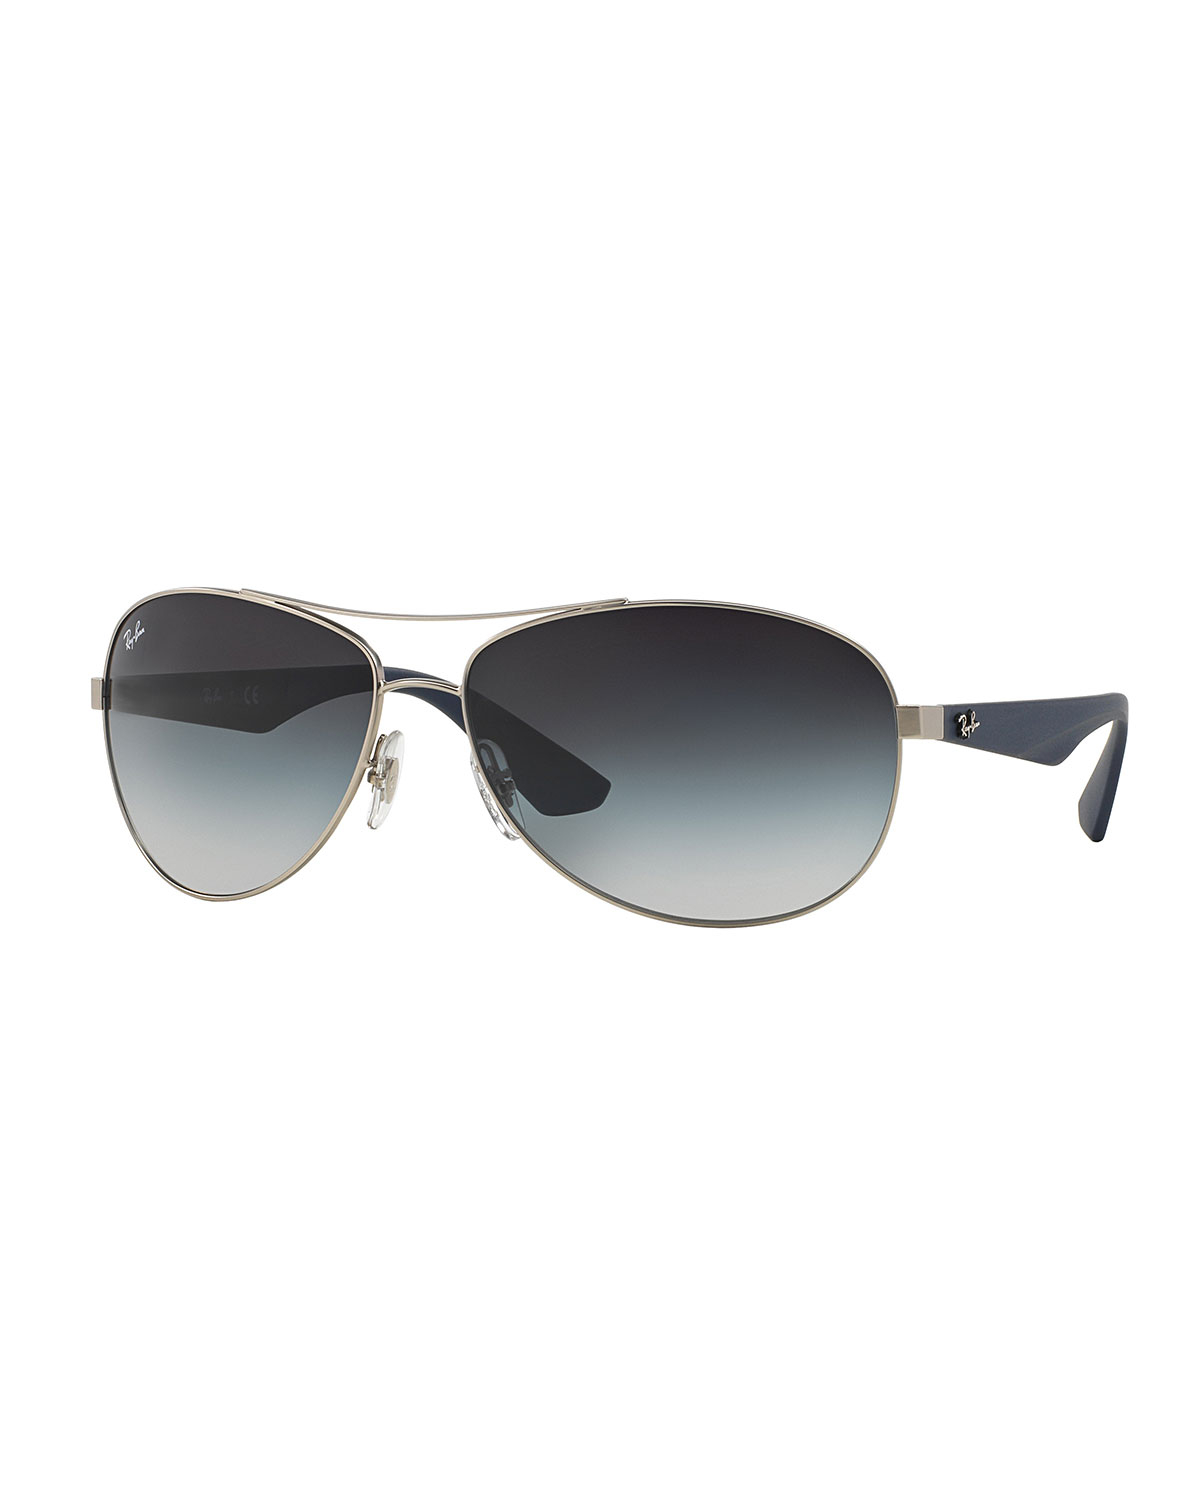 Ray-ban Wire-frame Metal Sunglasses in Gray Lyst